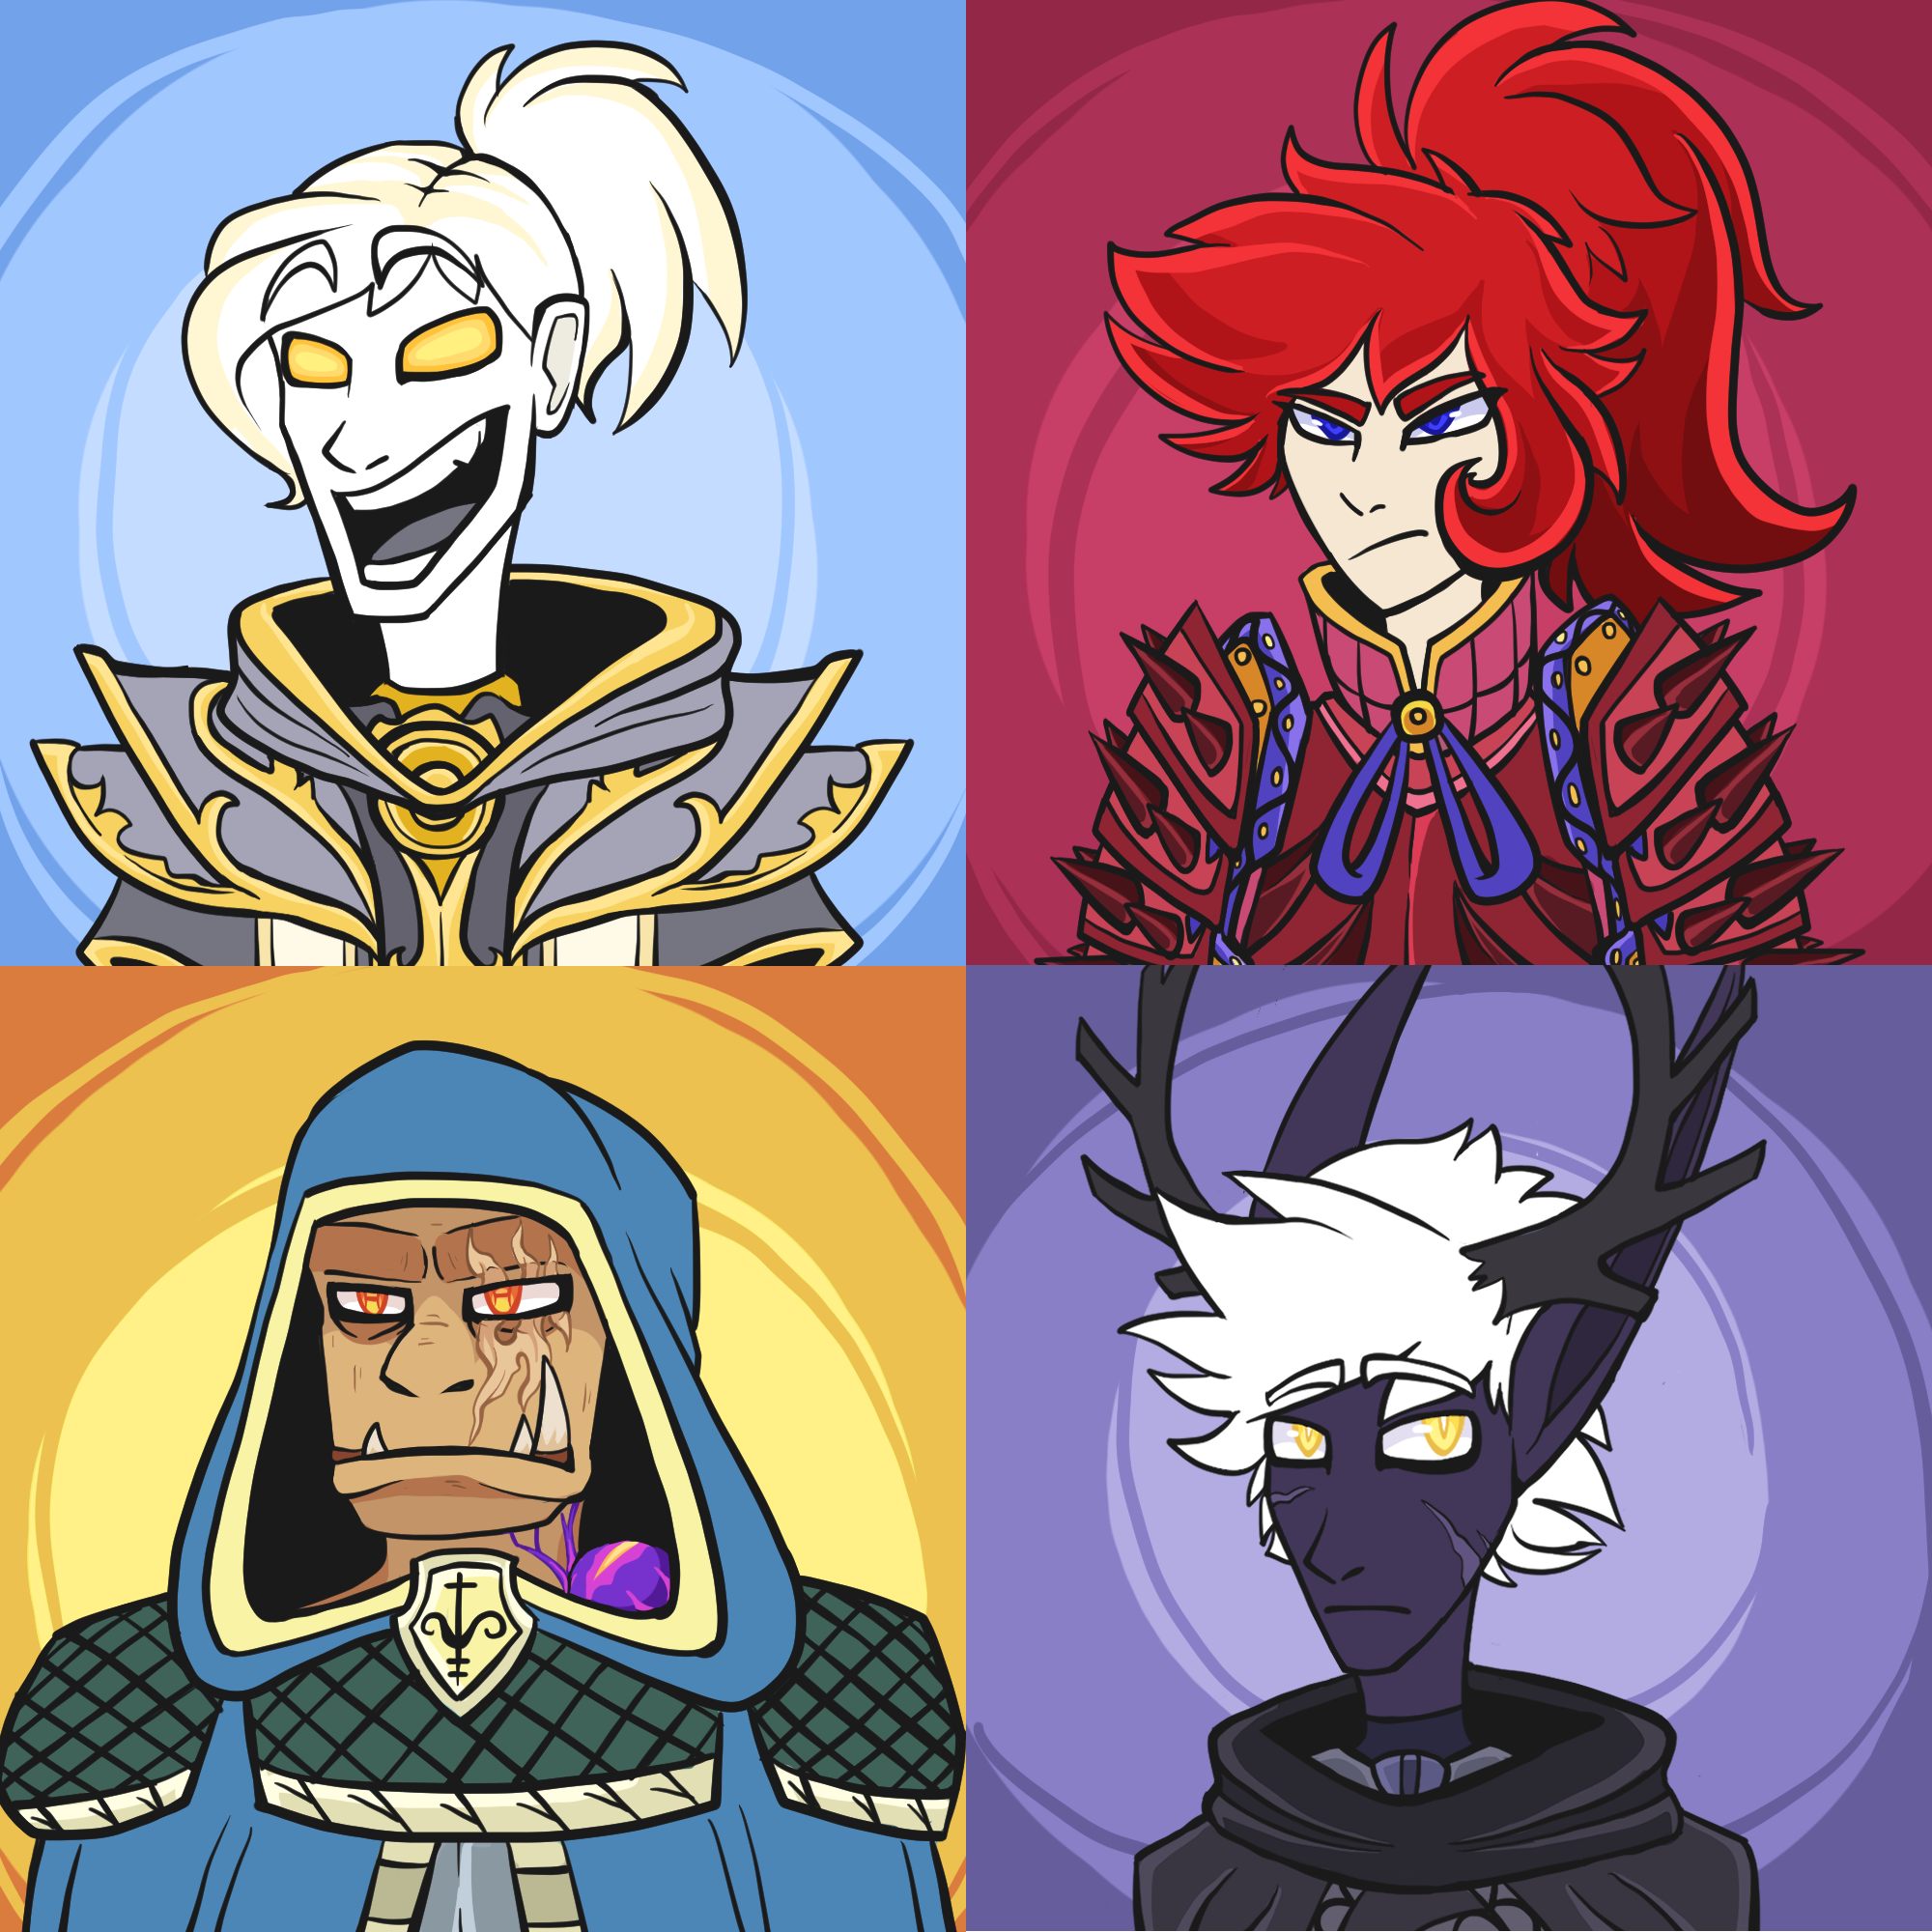 Our Dnd Party (New)